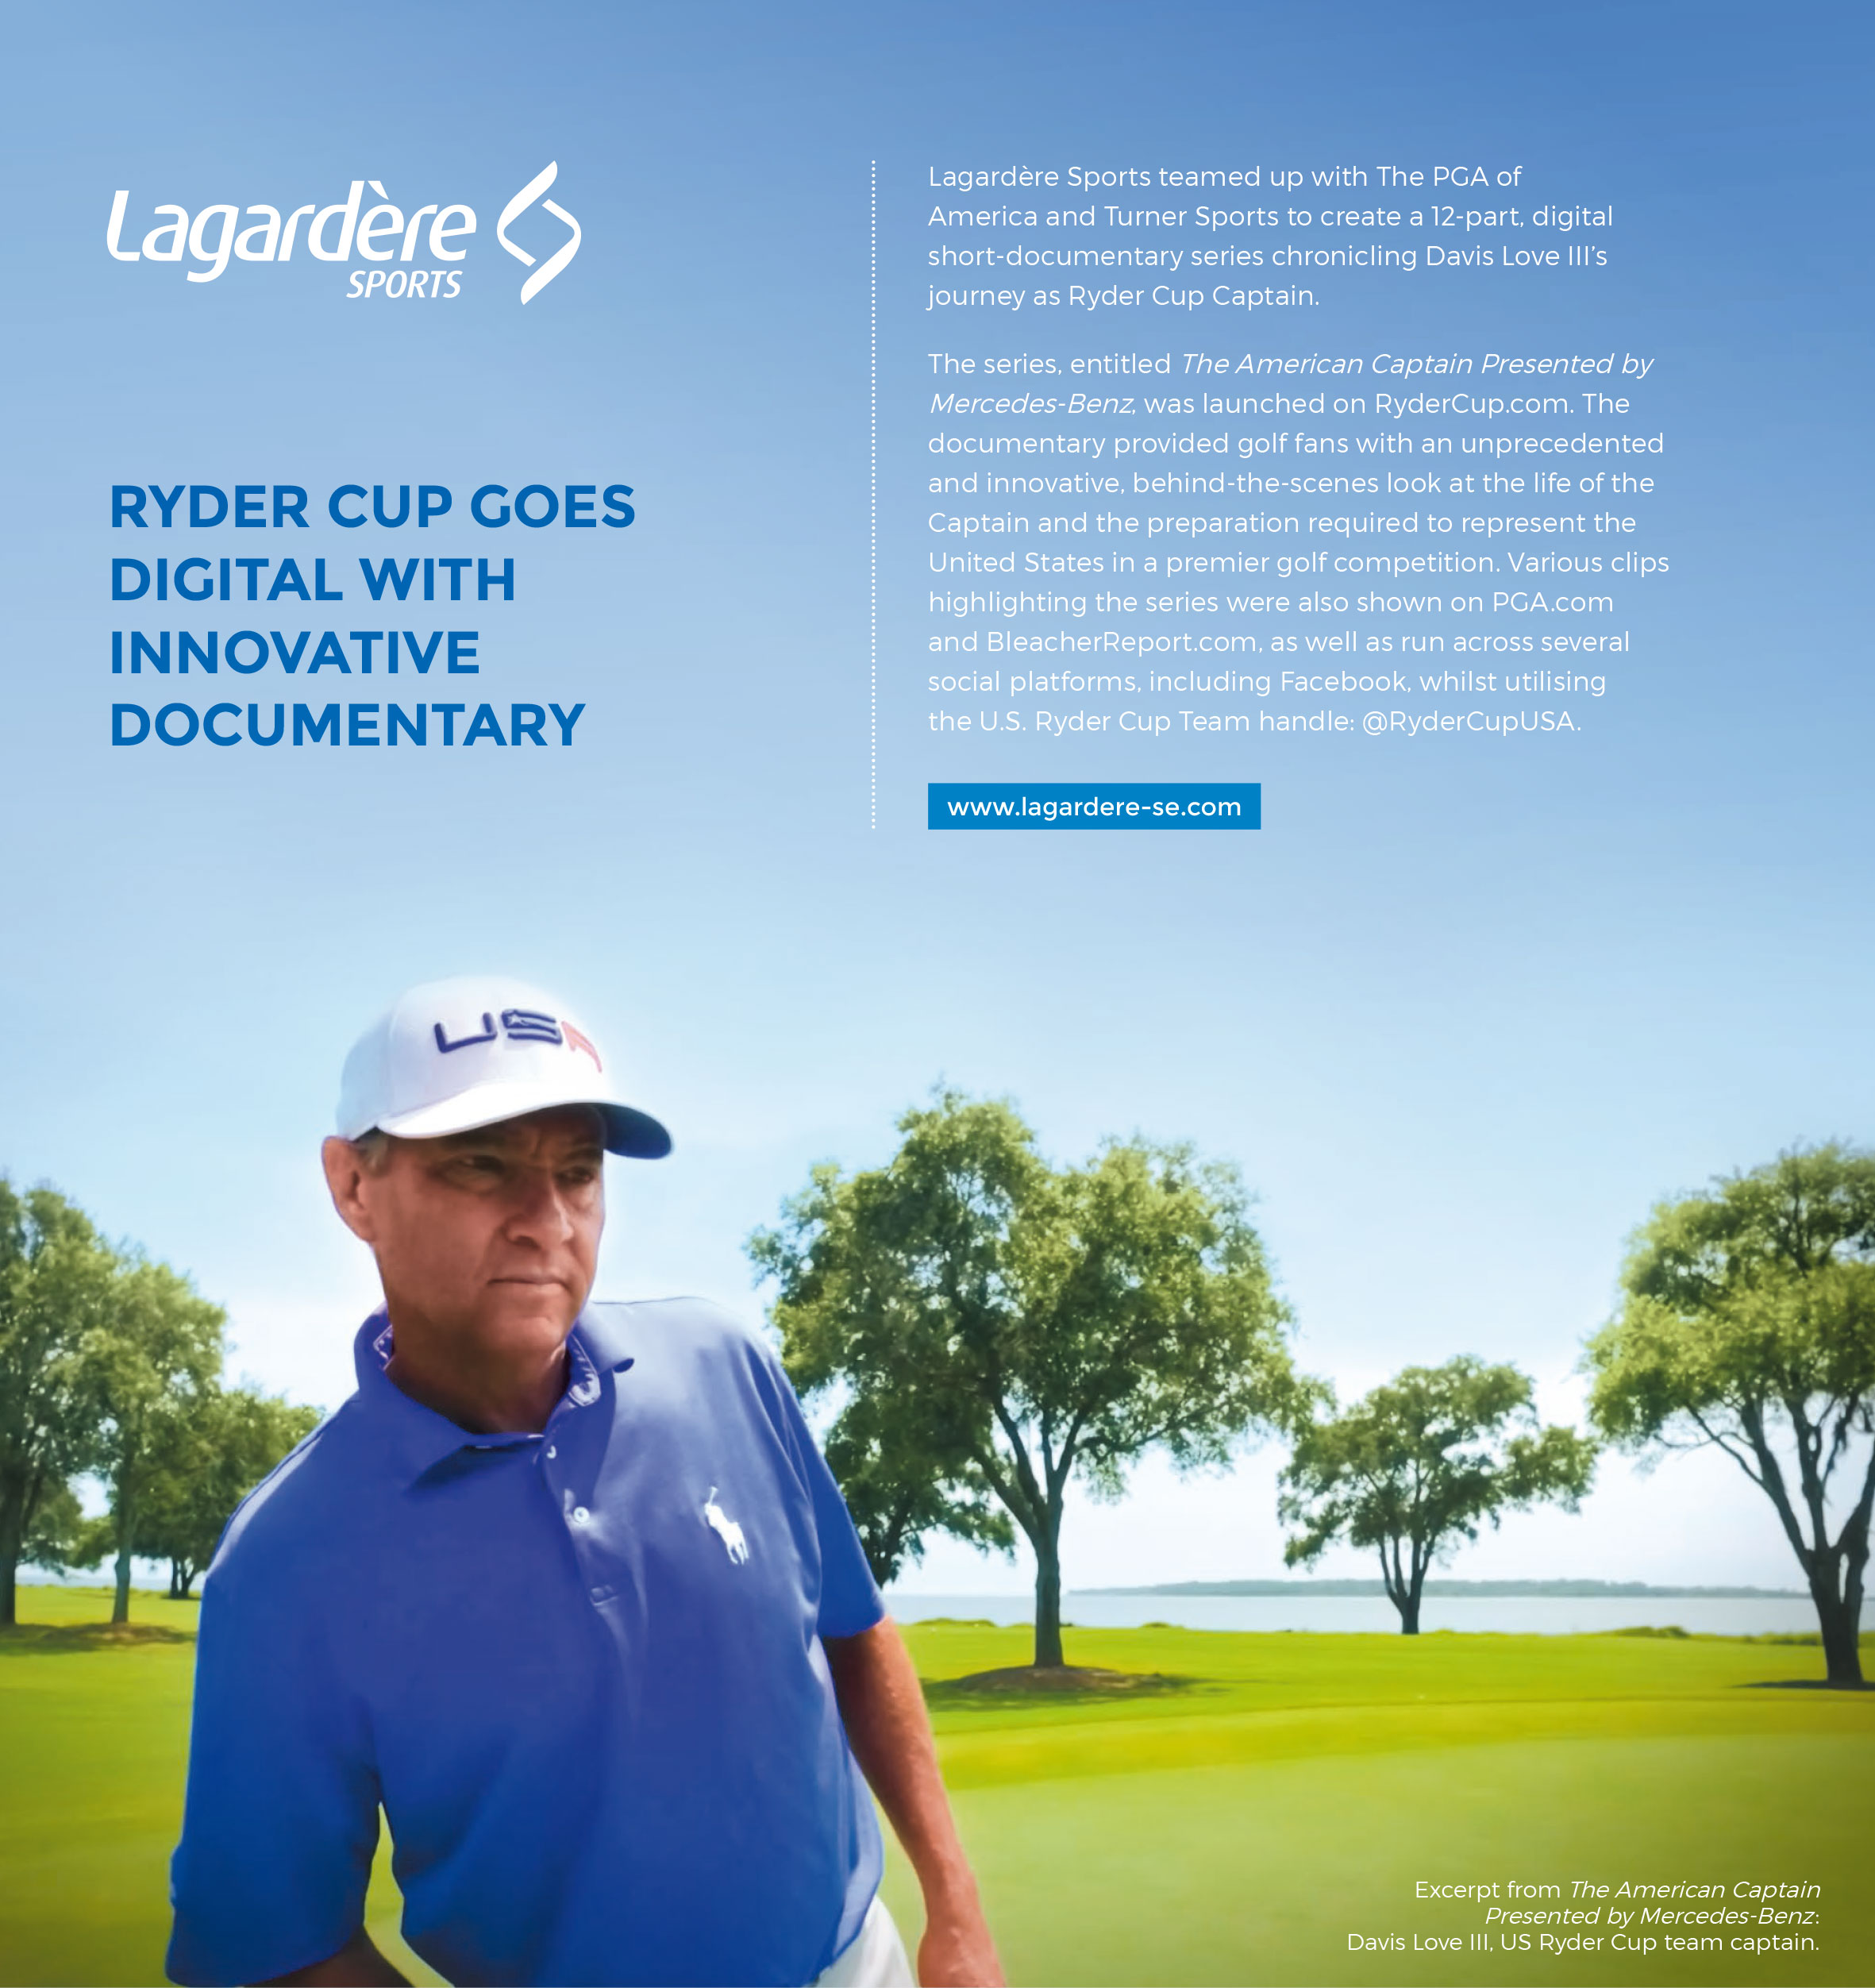 Excerpt from The American Captain Presented by Mercedes-Benz: Davis Love III, US Ryder Cup team captain